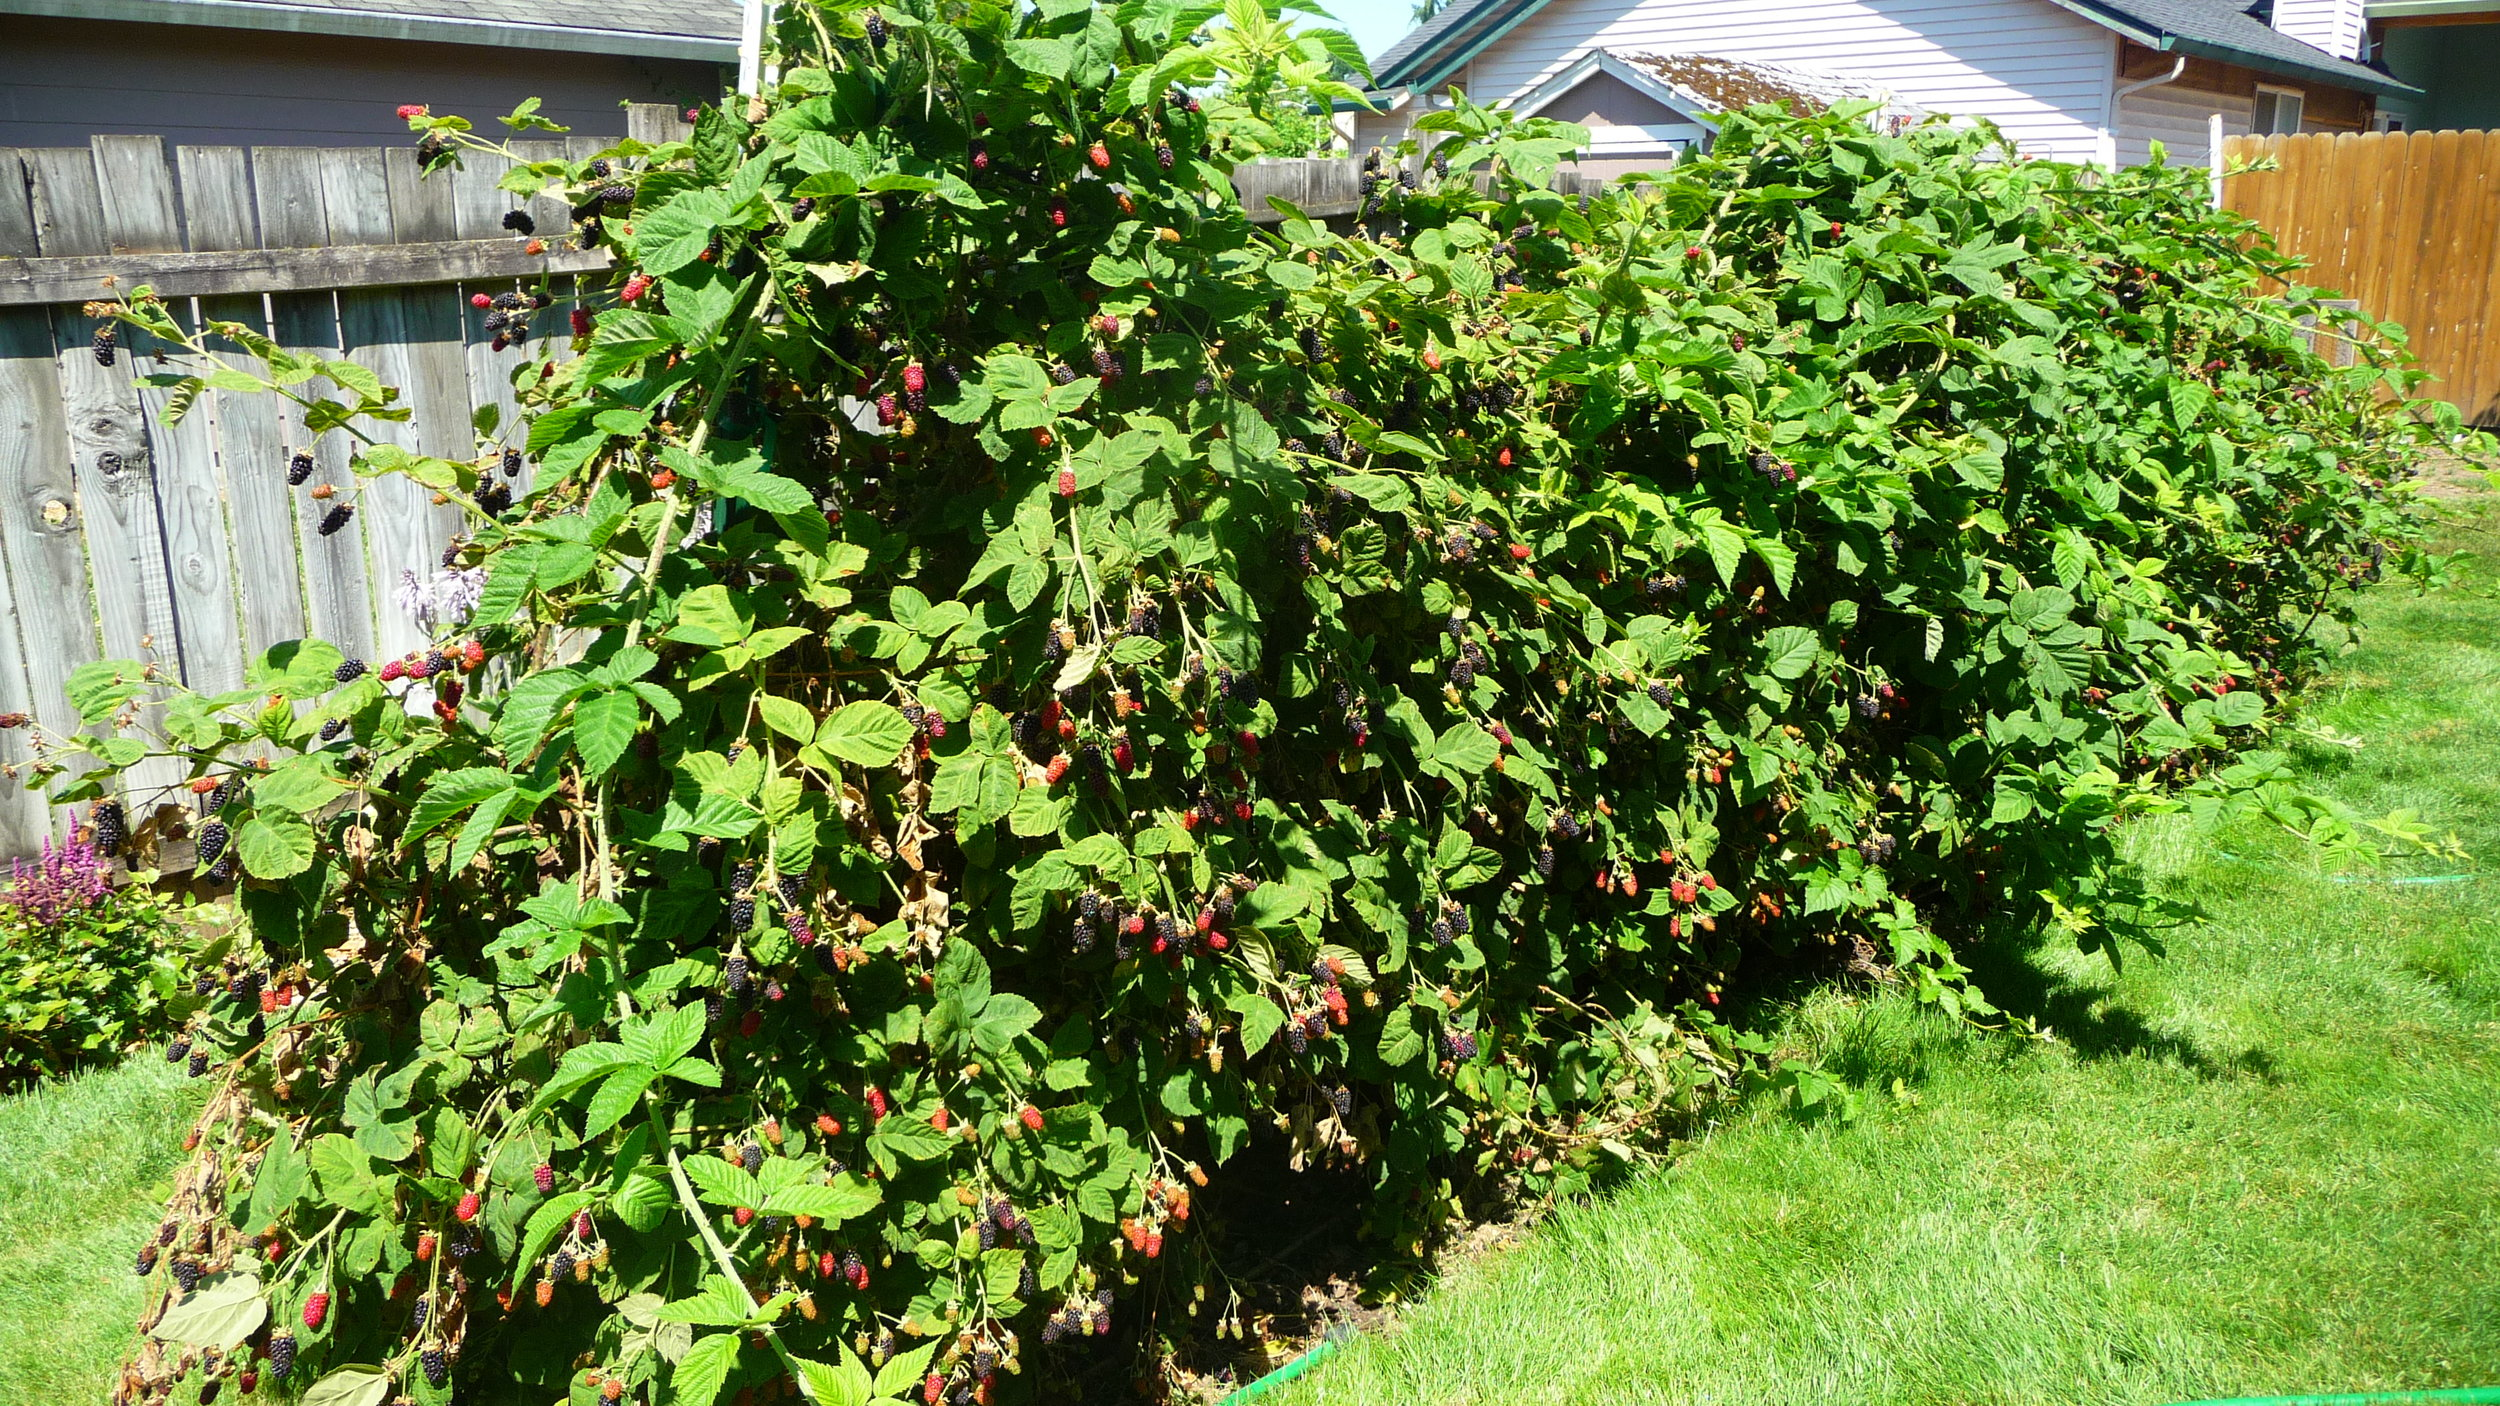 Our backyard marionberry patch with berries just right for picking.